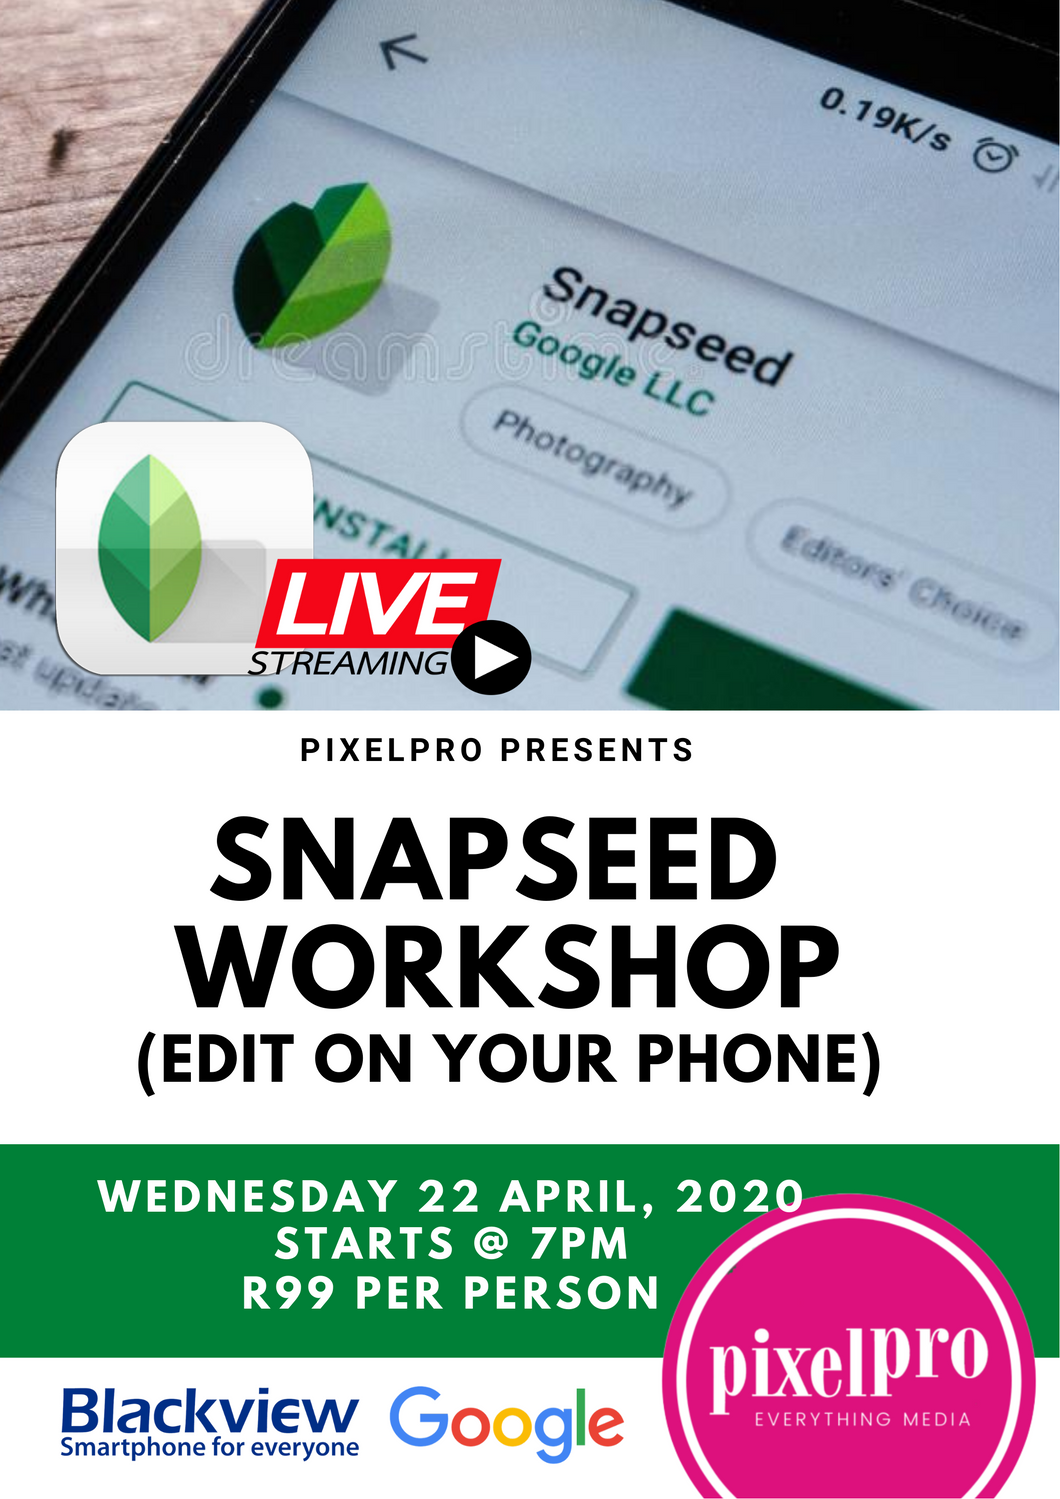 Snapseed Workshop - Pixel Pro Photography